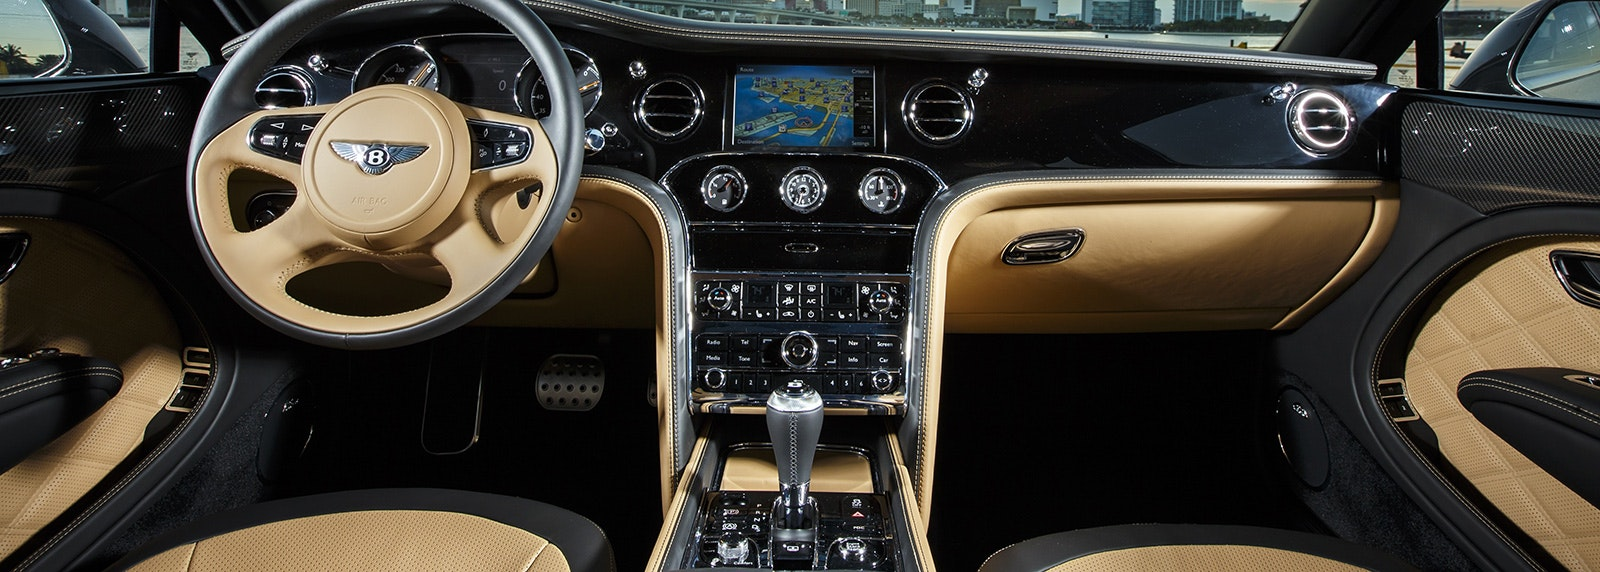 While Some Might Think The Mulsanne U2013 Bentleyu0027s Flagship Model U2013 Isnu0027t The  Prettiest Car To Look At, Its Interior Is Arguably One Of The Best Ever  Made. Nice Look